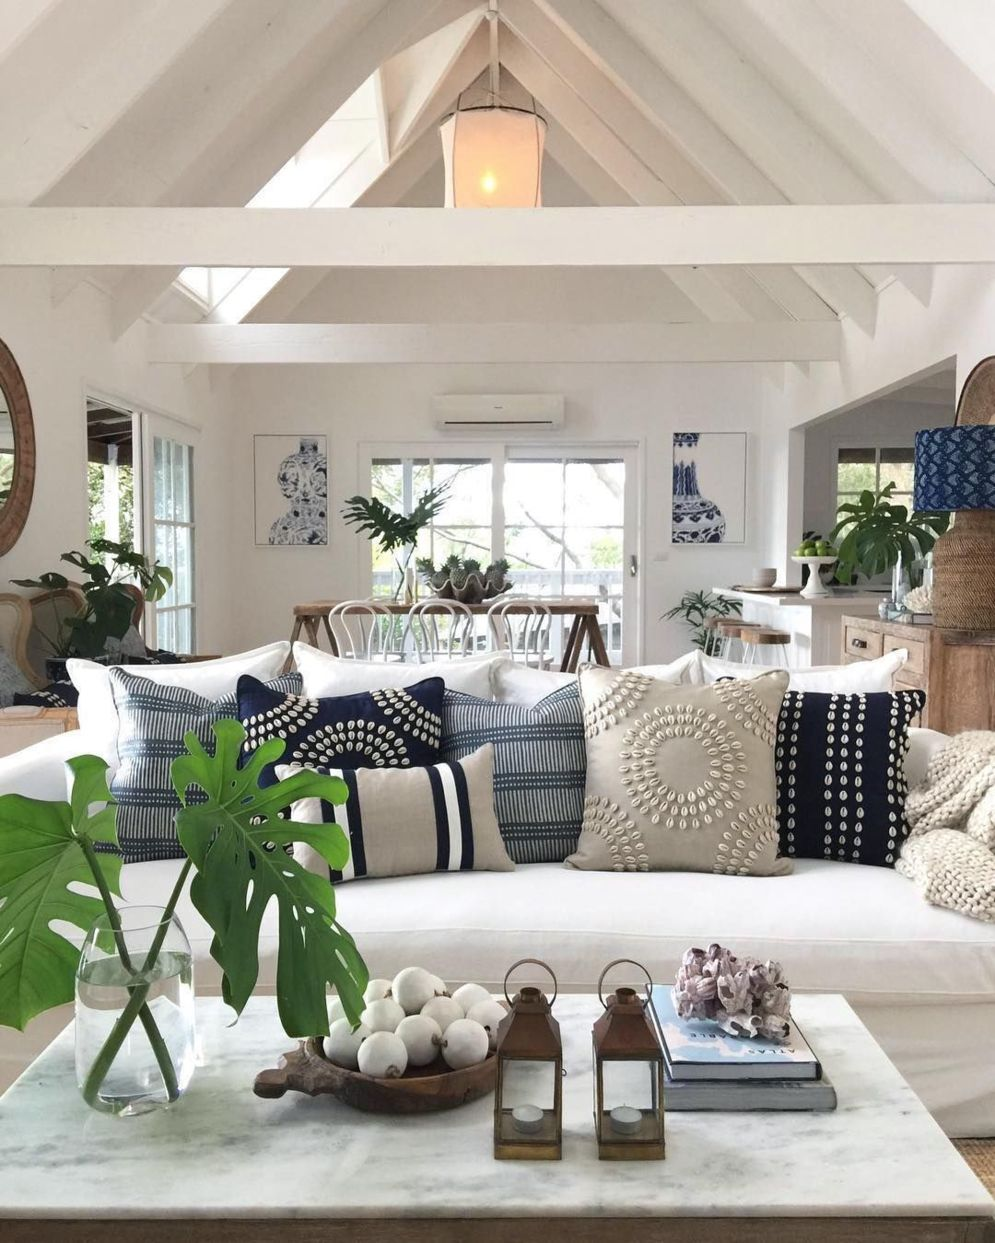 Spacious home images with vaulted ceiling showcasing grand and wonderful home design Image 25